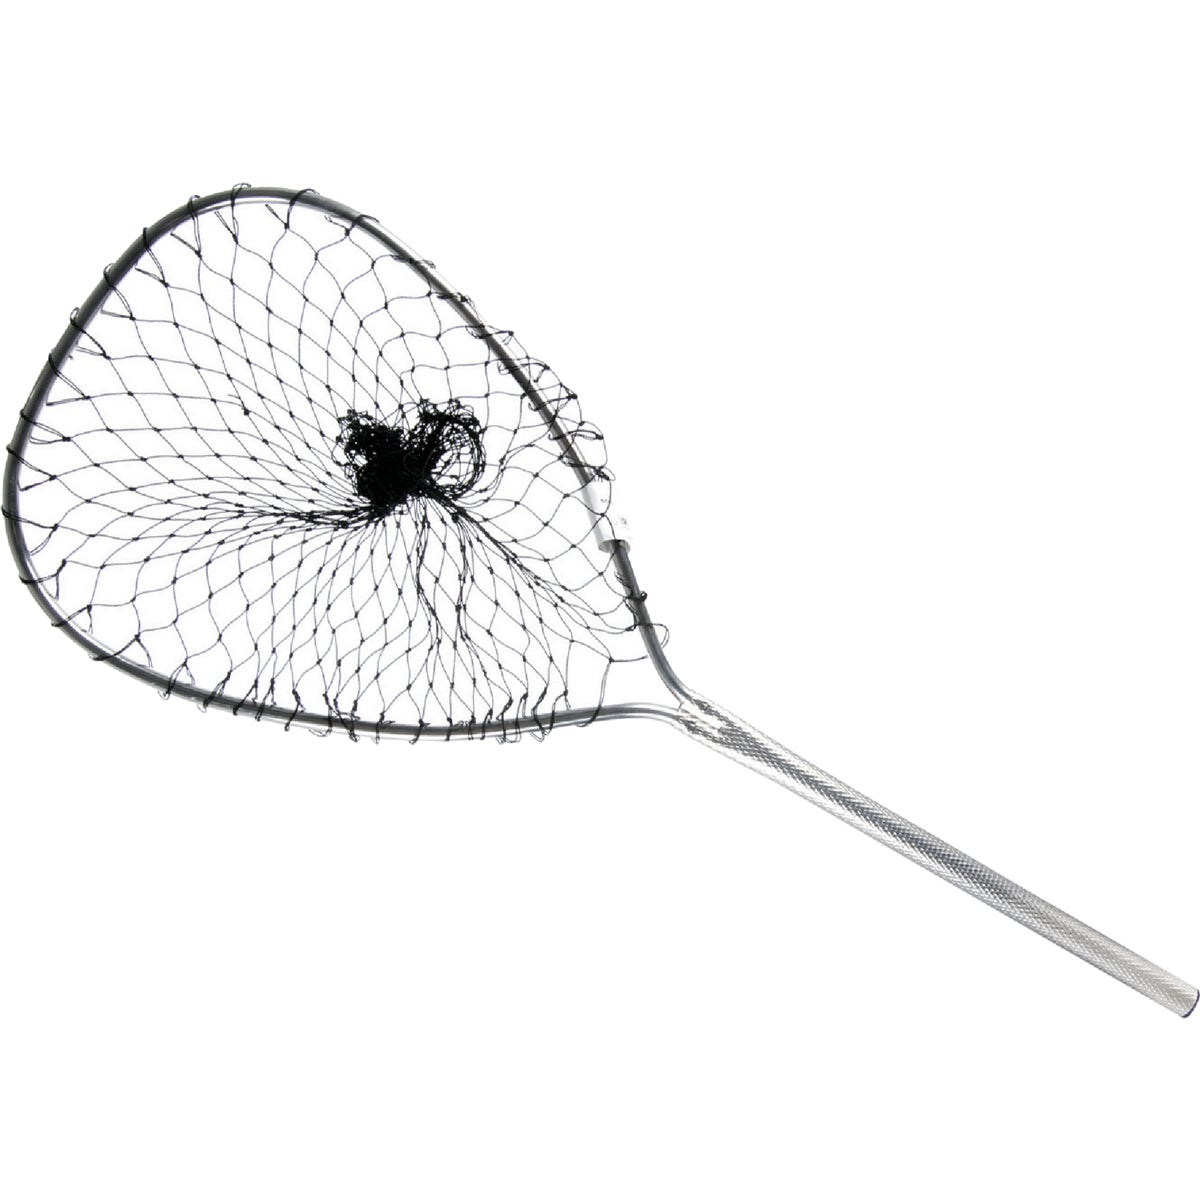 18X24 LANDING NET - LN-250 by South Bend Sptg Good